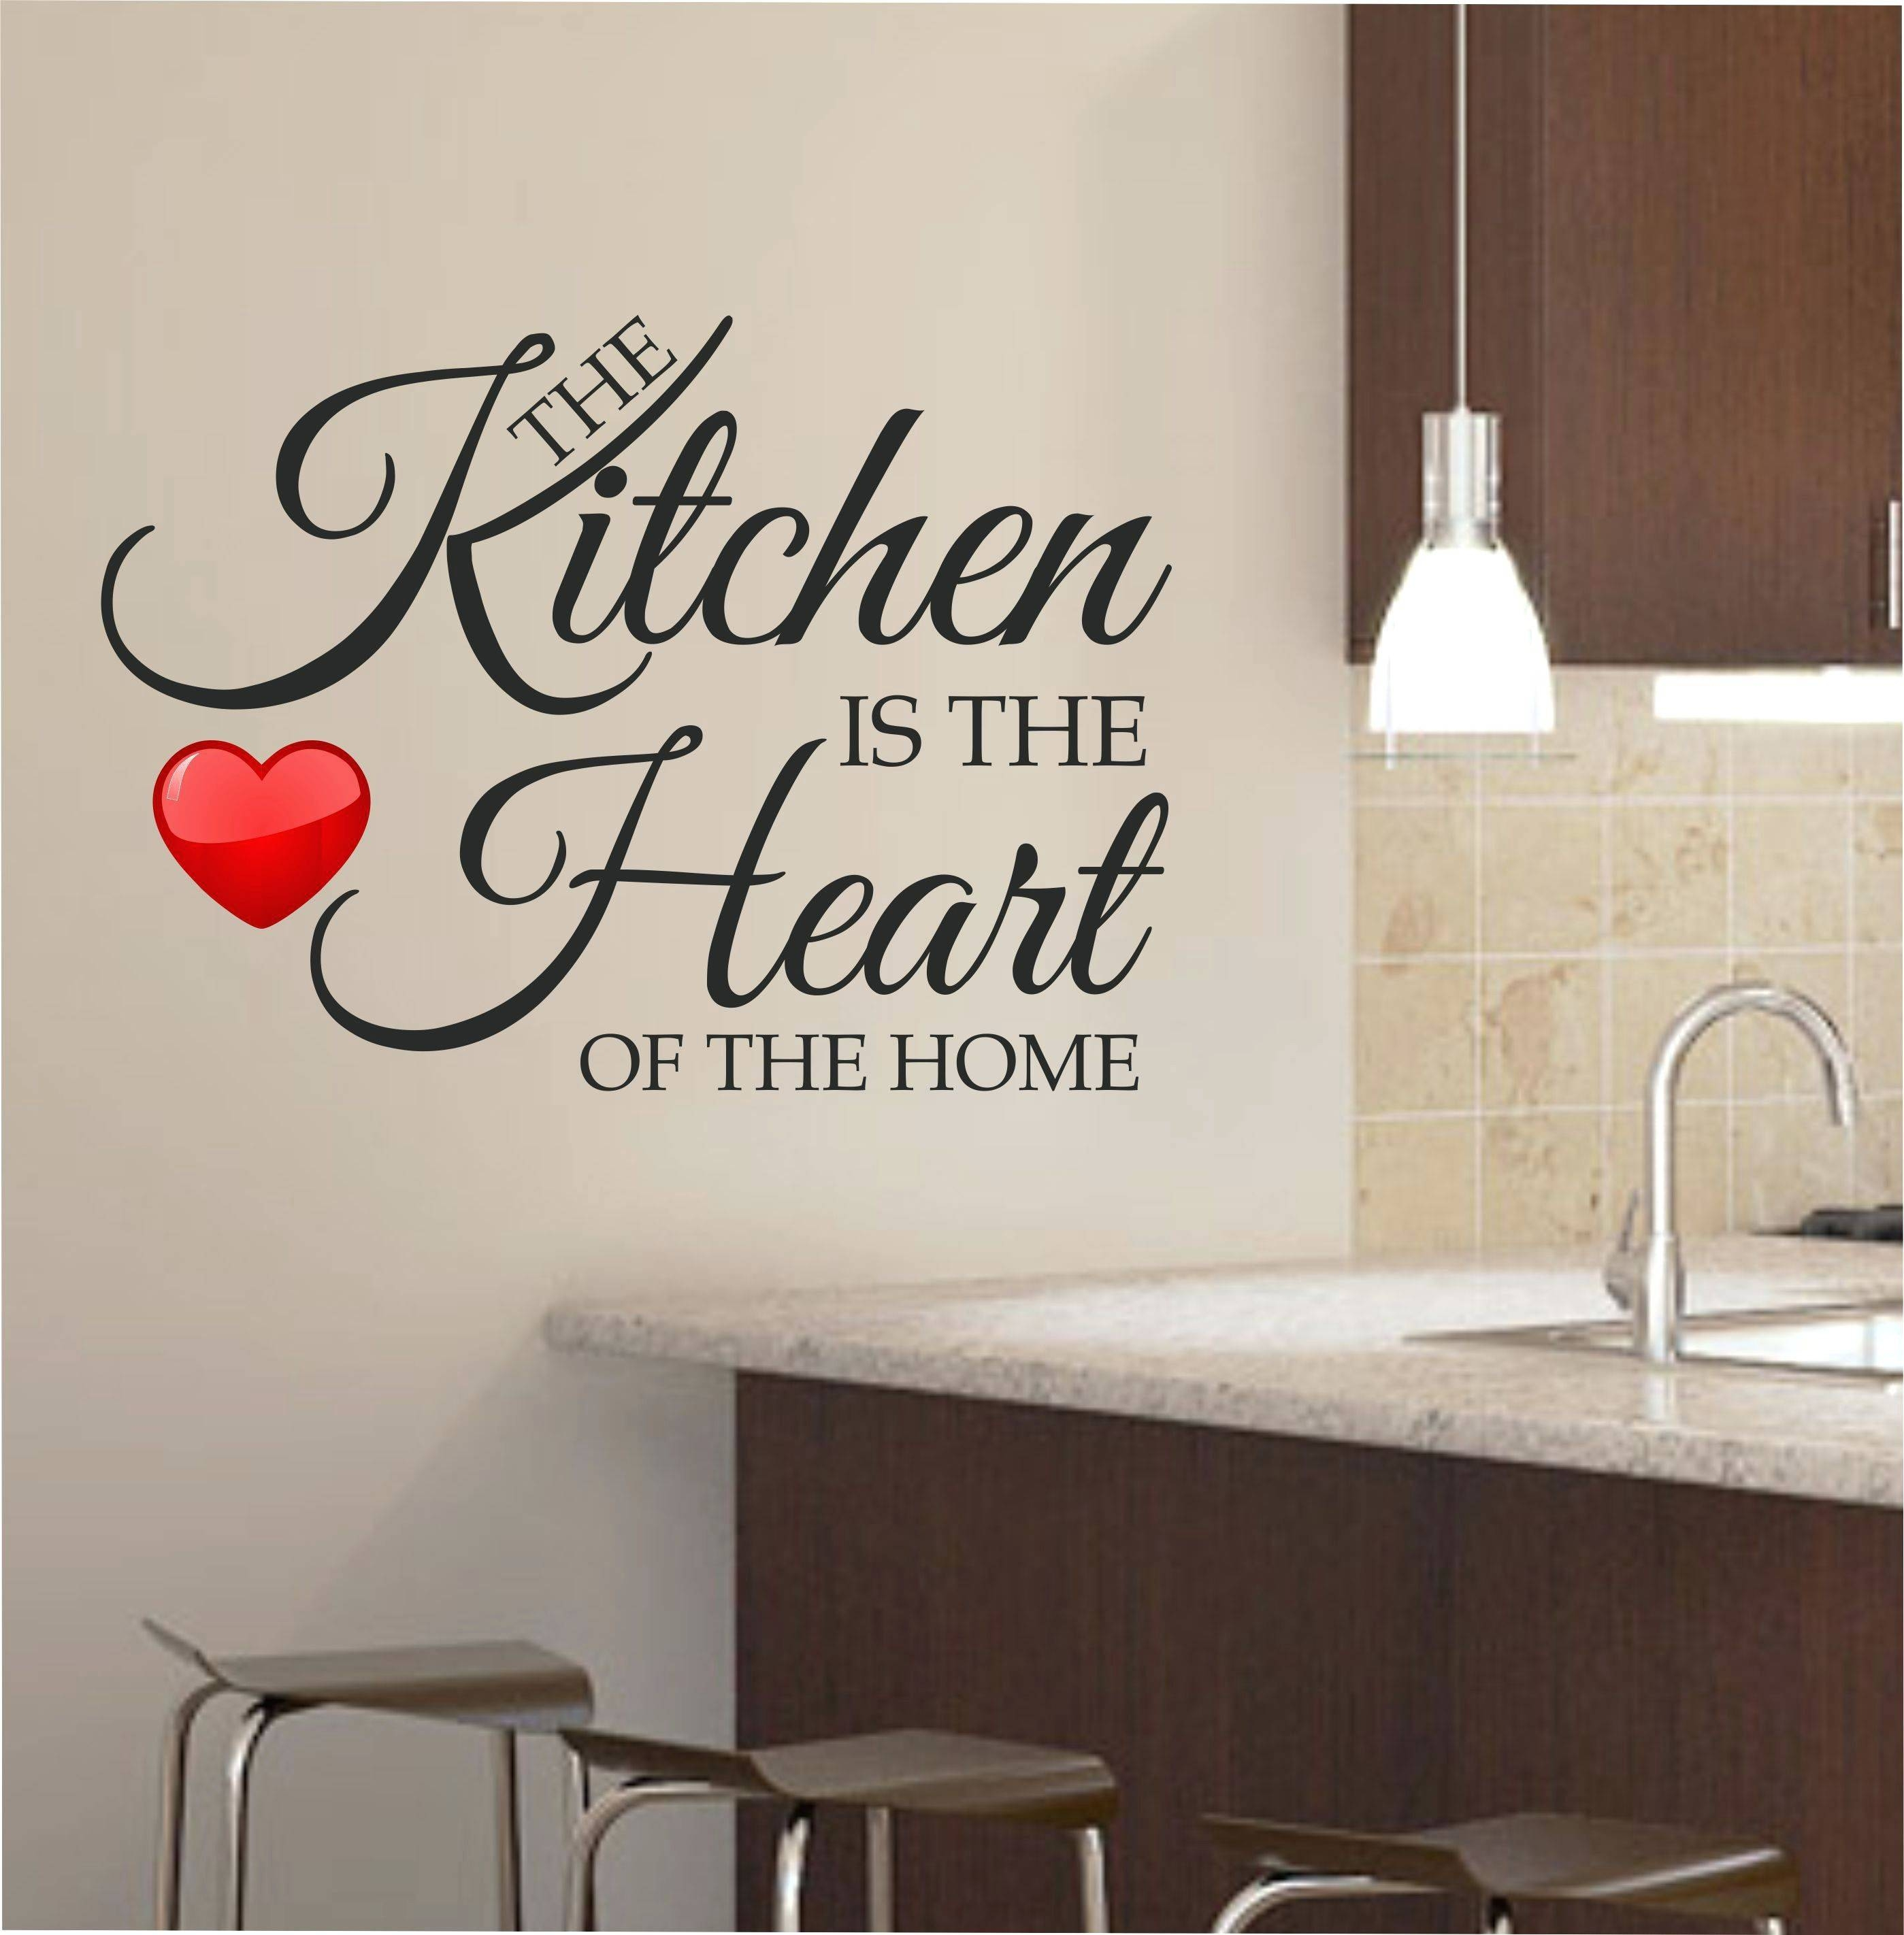 Coffee Themed Kitchen Items Best Wall Arts Kitchen Themed Metal Pertaining To Newest Kitchen Metal Wall Art (View 6 of 20)